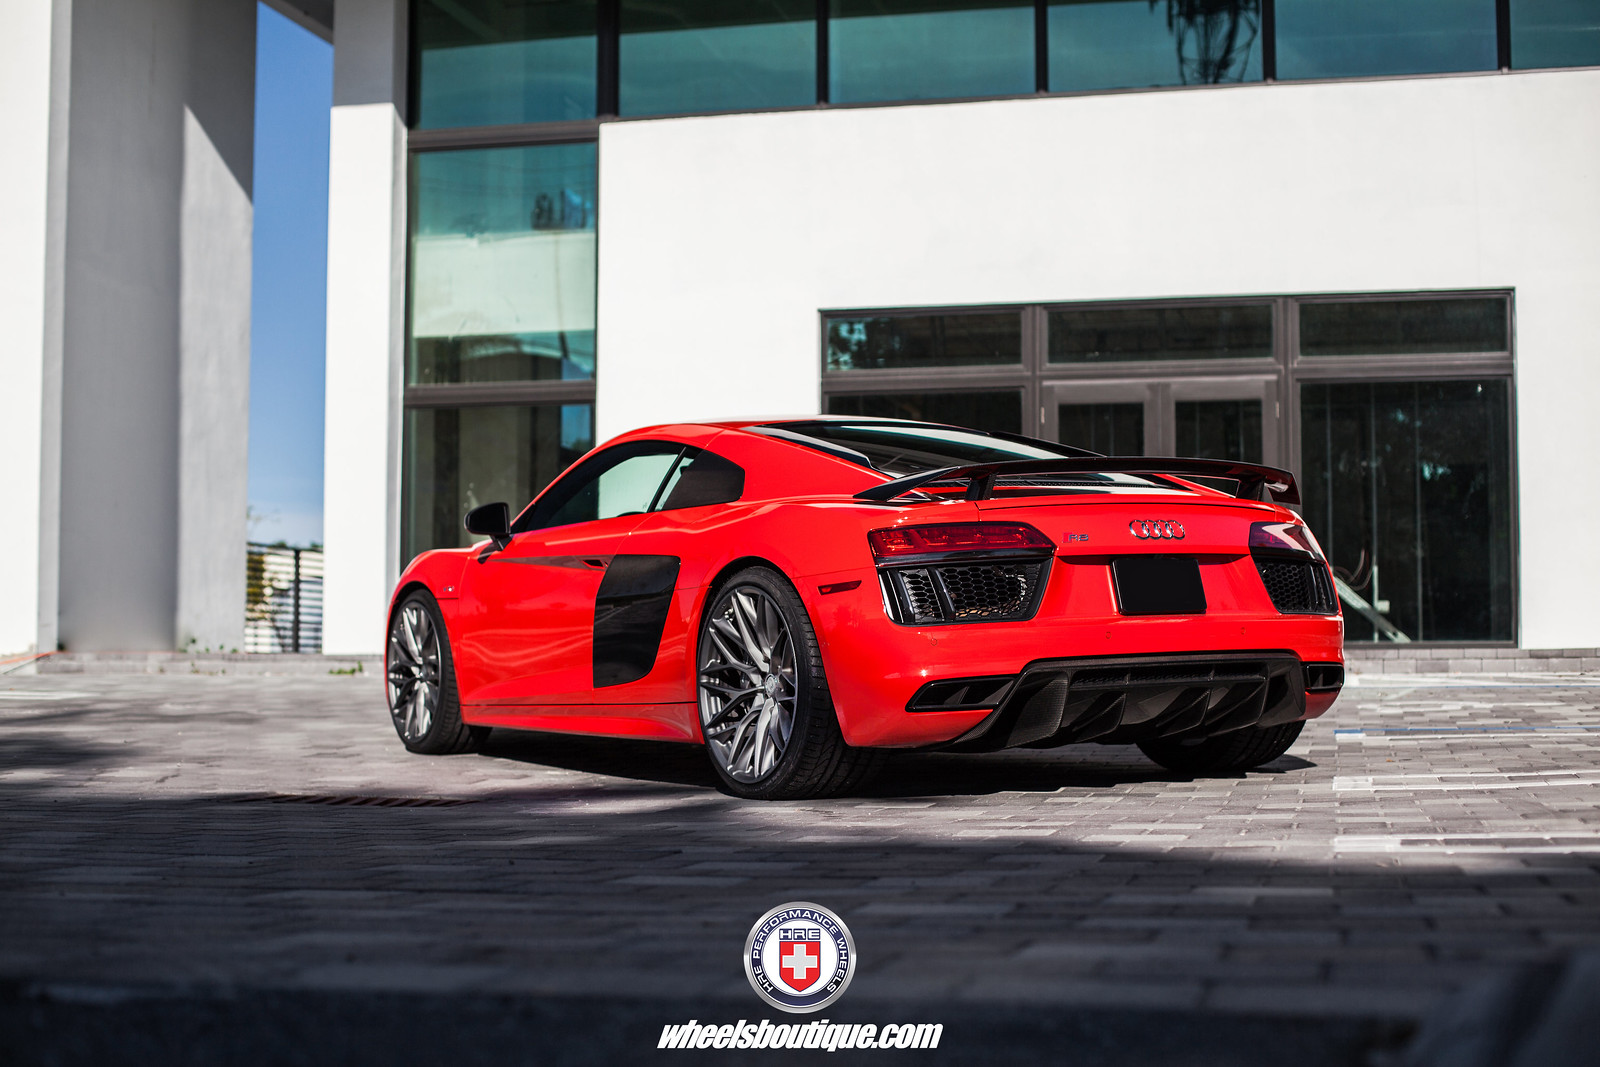 2nd gen audi r8 v10 plus on hre p200 39 s by wheels boutique 6speedonline porsche forum and. Black Bedroom Furniture Sets. Home Design Ideas